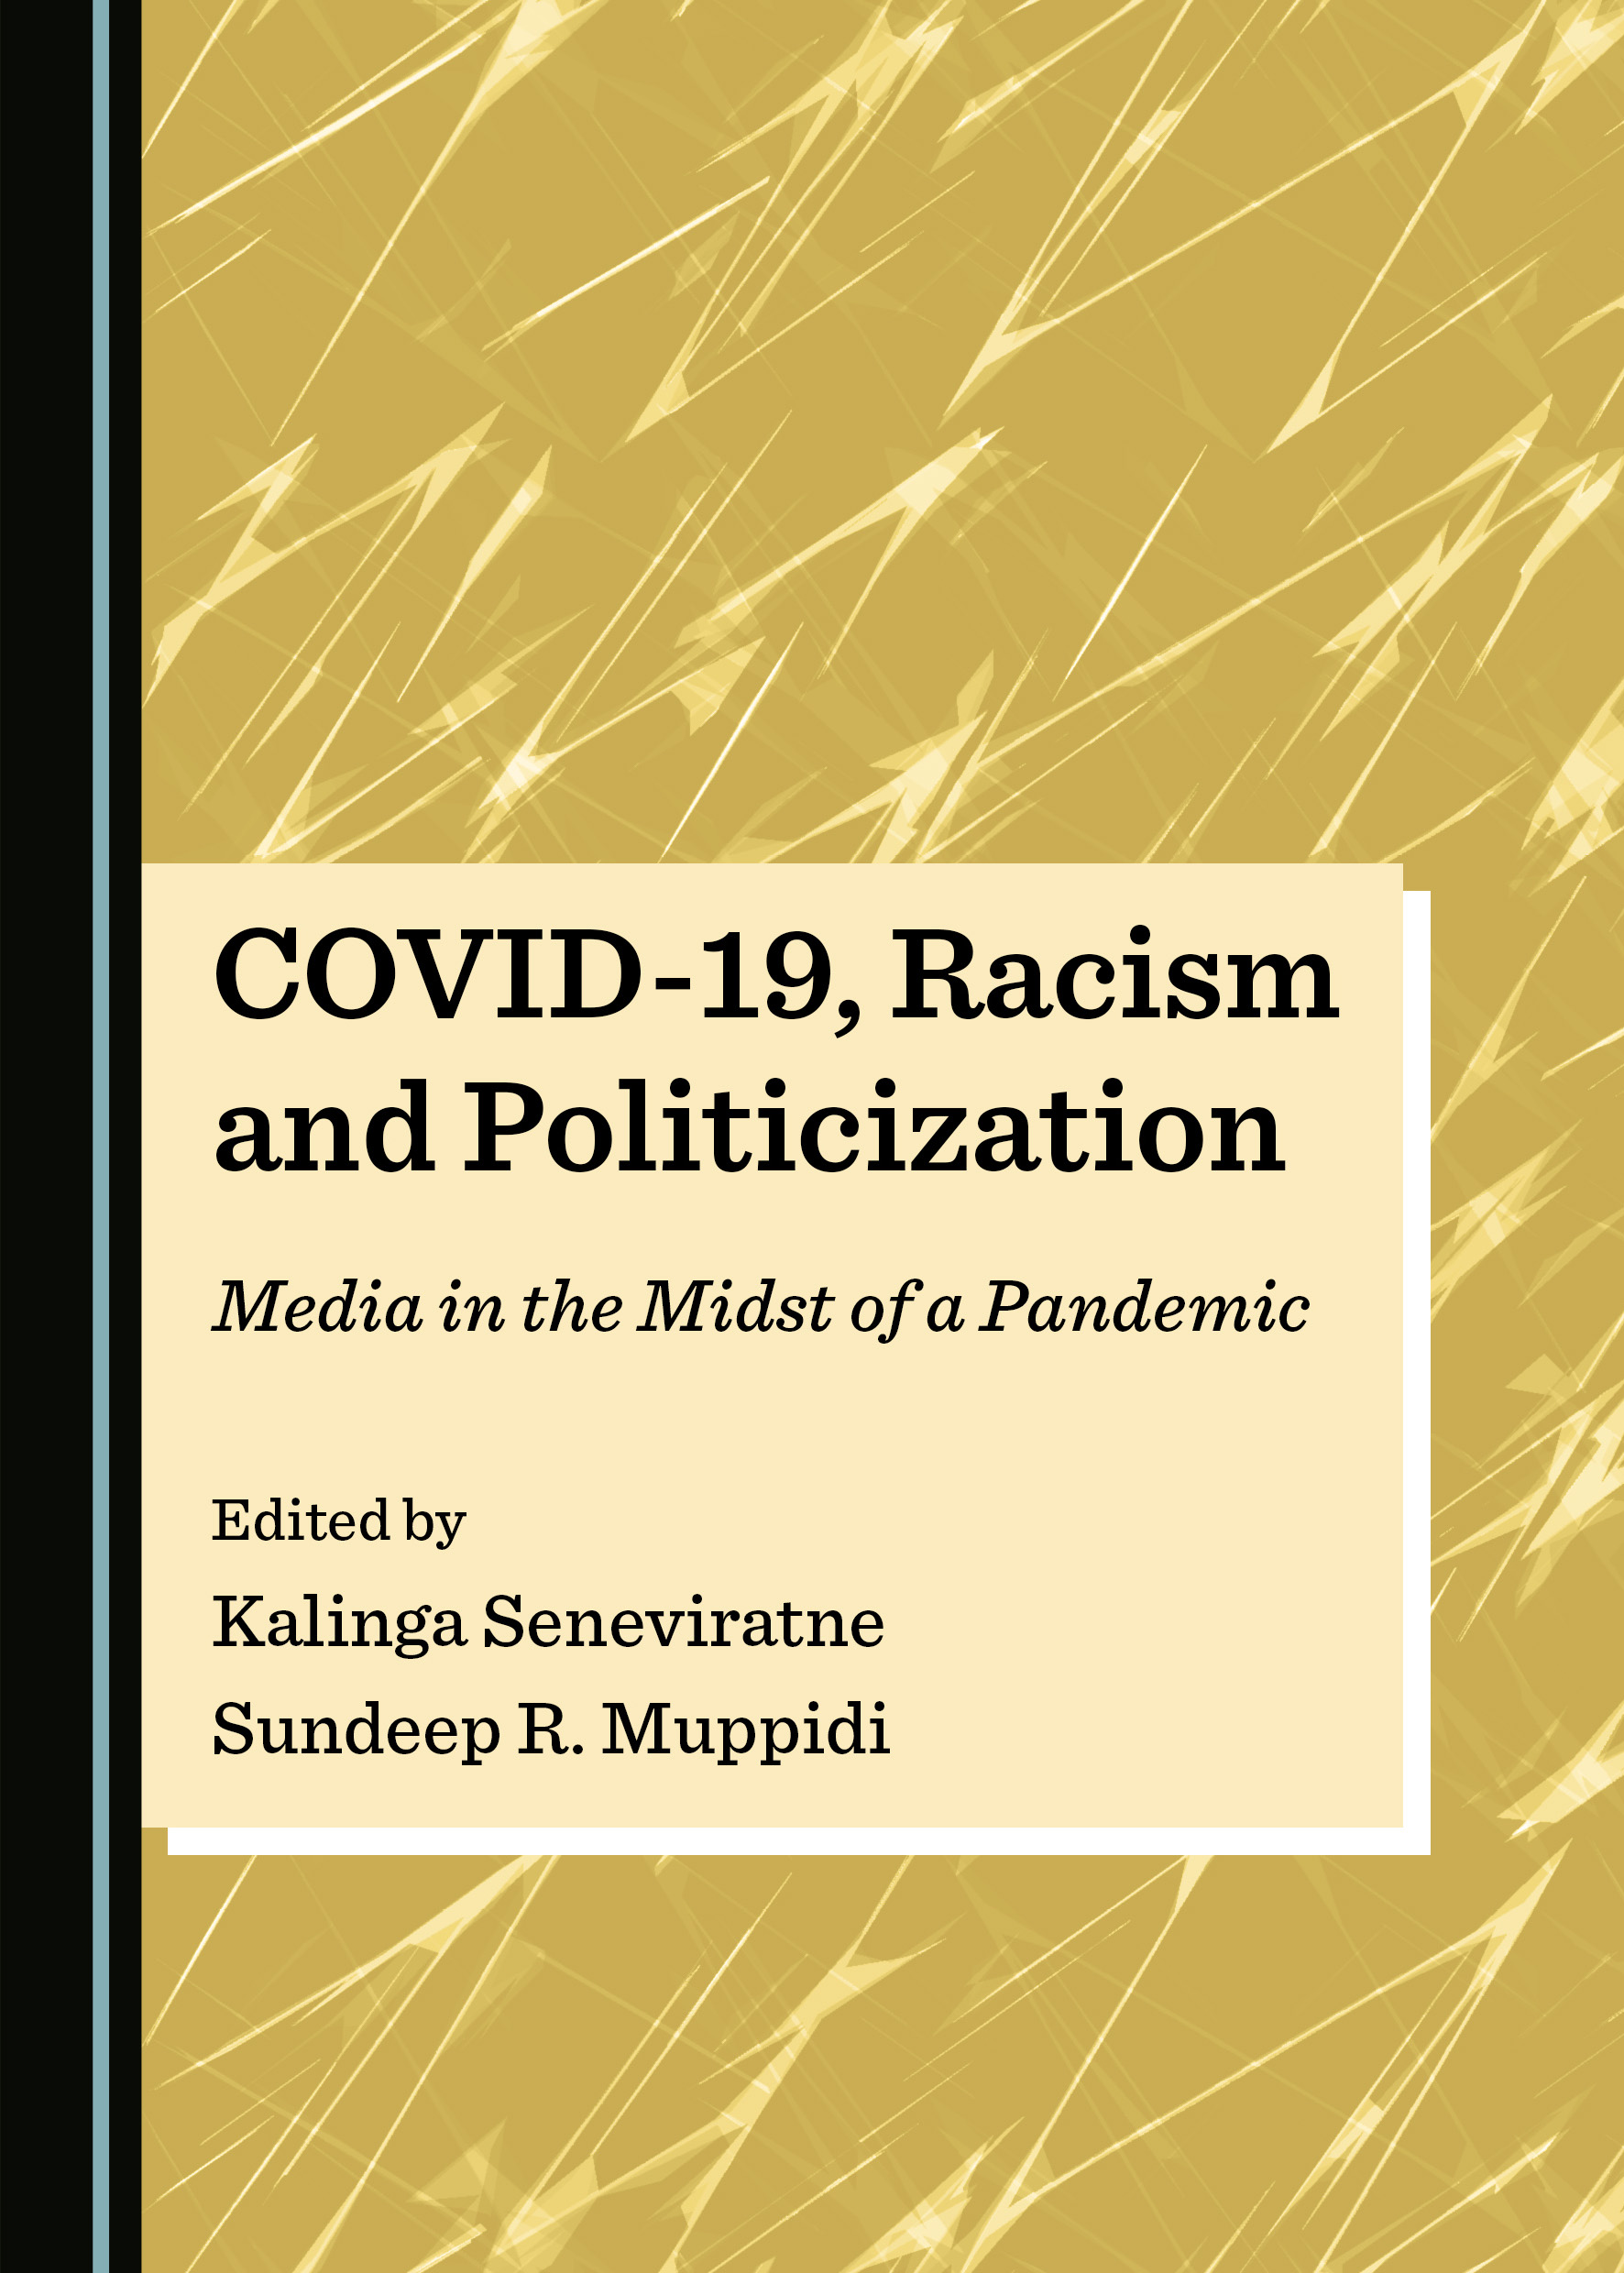 COVID-19, Racism and Politicization: Media in the Midst of a Pandemic